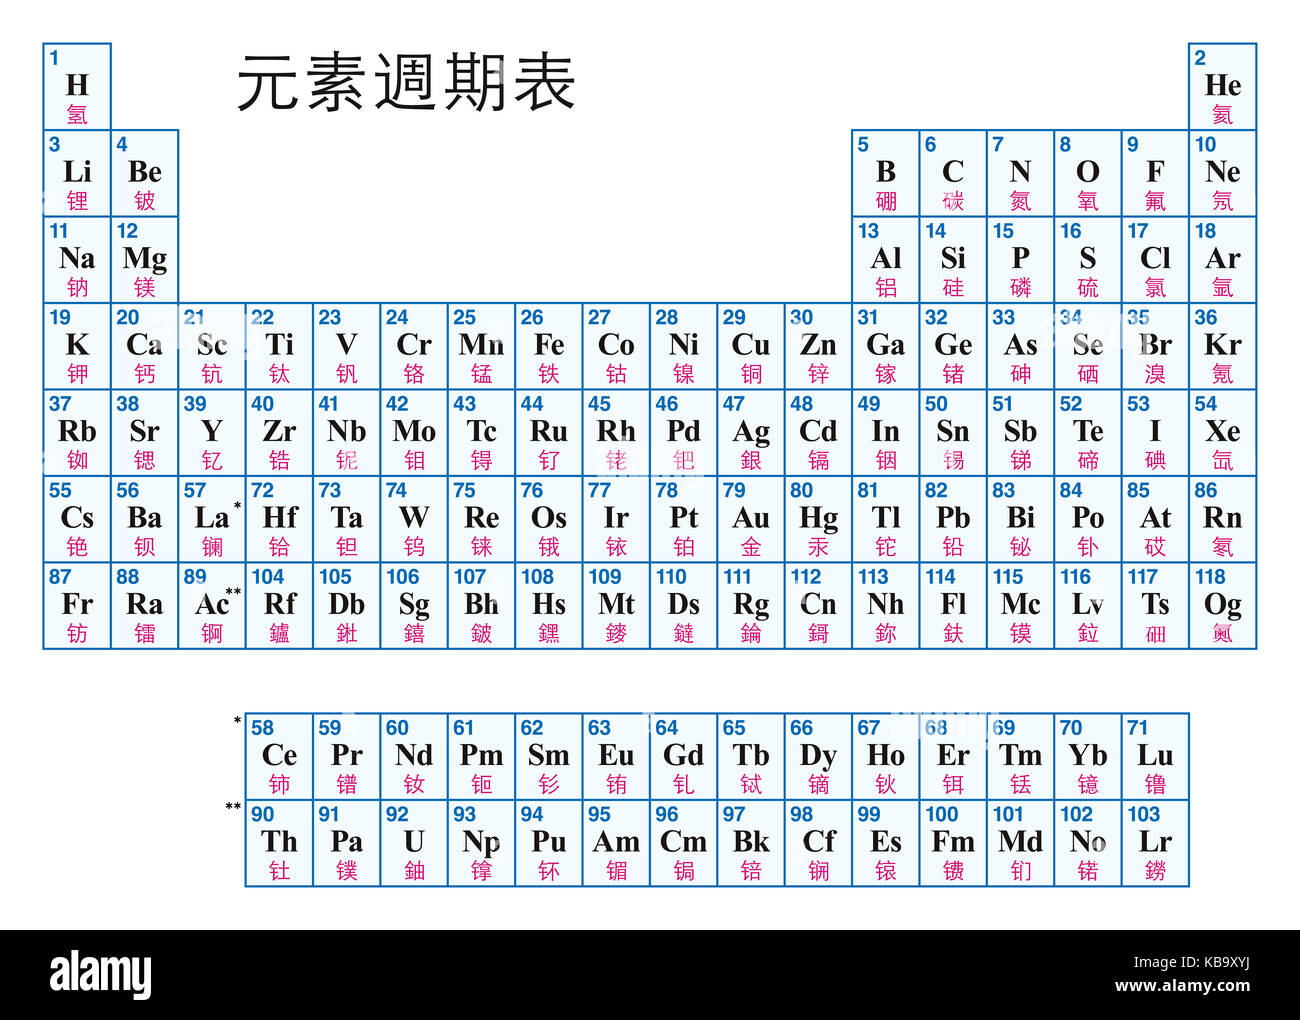 Periodic table of the elements chinese tabular arrangement of periodic table of the elements chinese tabular arrangement of chemical elements with their atomic numbers symbols and names 118 confirmed elements urtaz Images